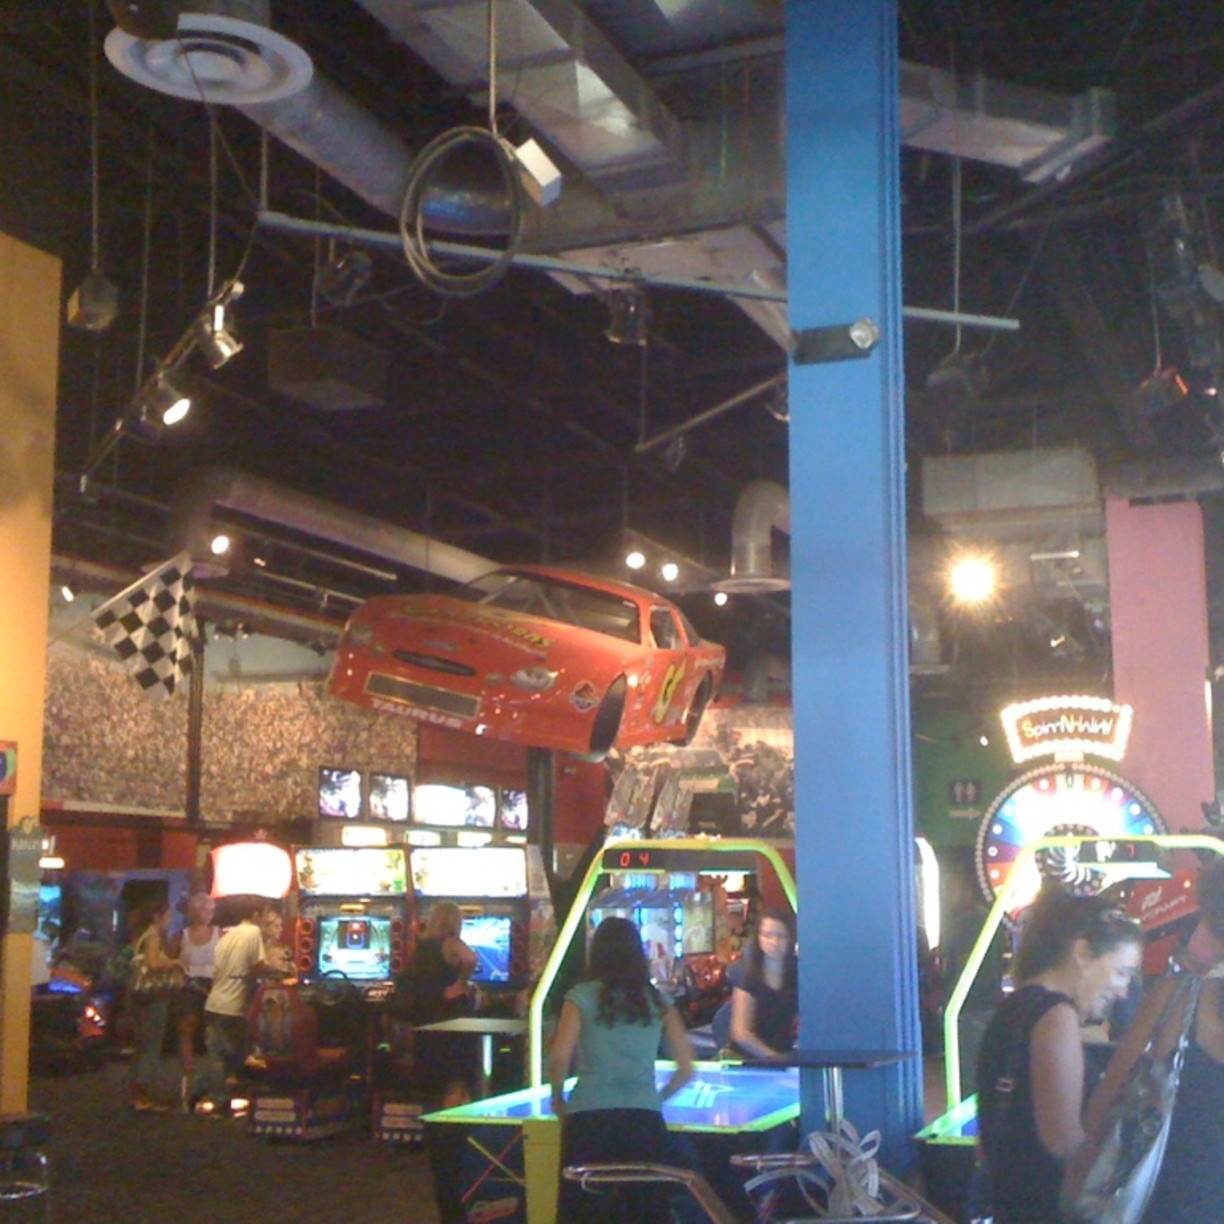 Best ideas about Game Room Sawgrass . Save or Pin GameRoom Sawgrass Restaurant & Arcade Sunrise Florida Now.